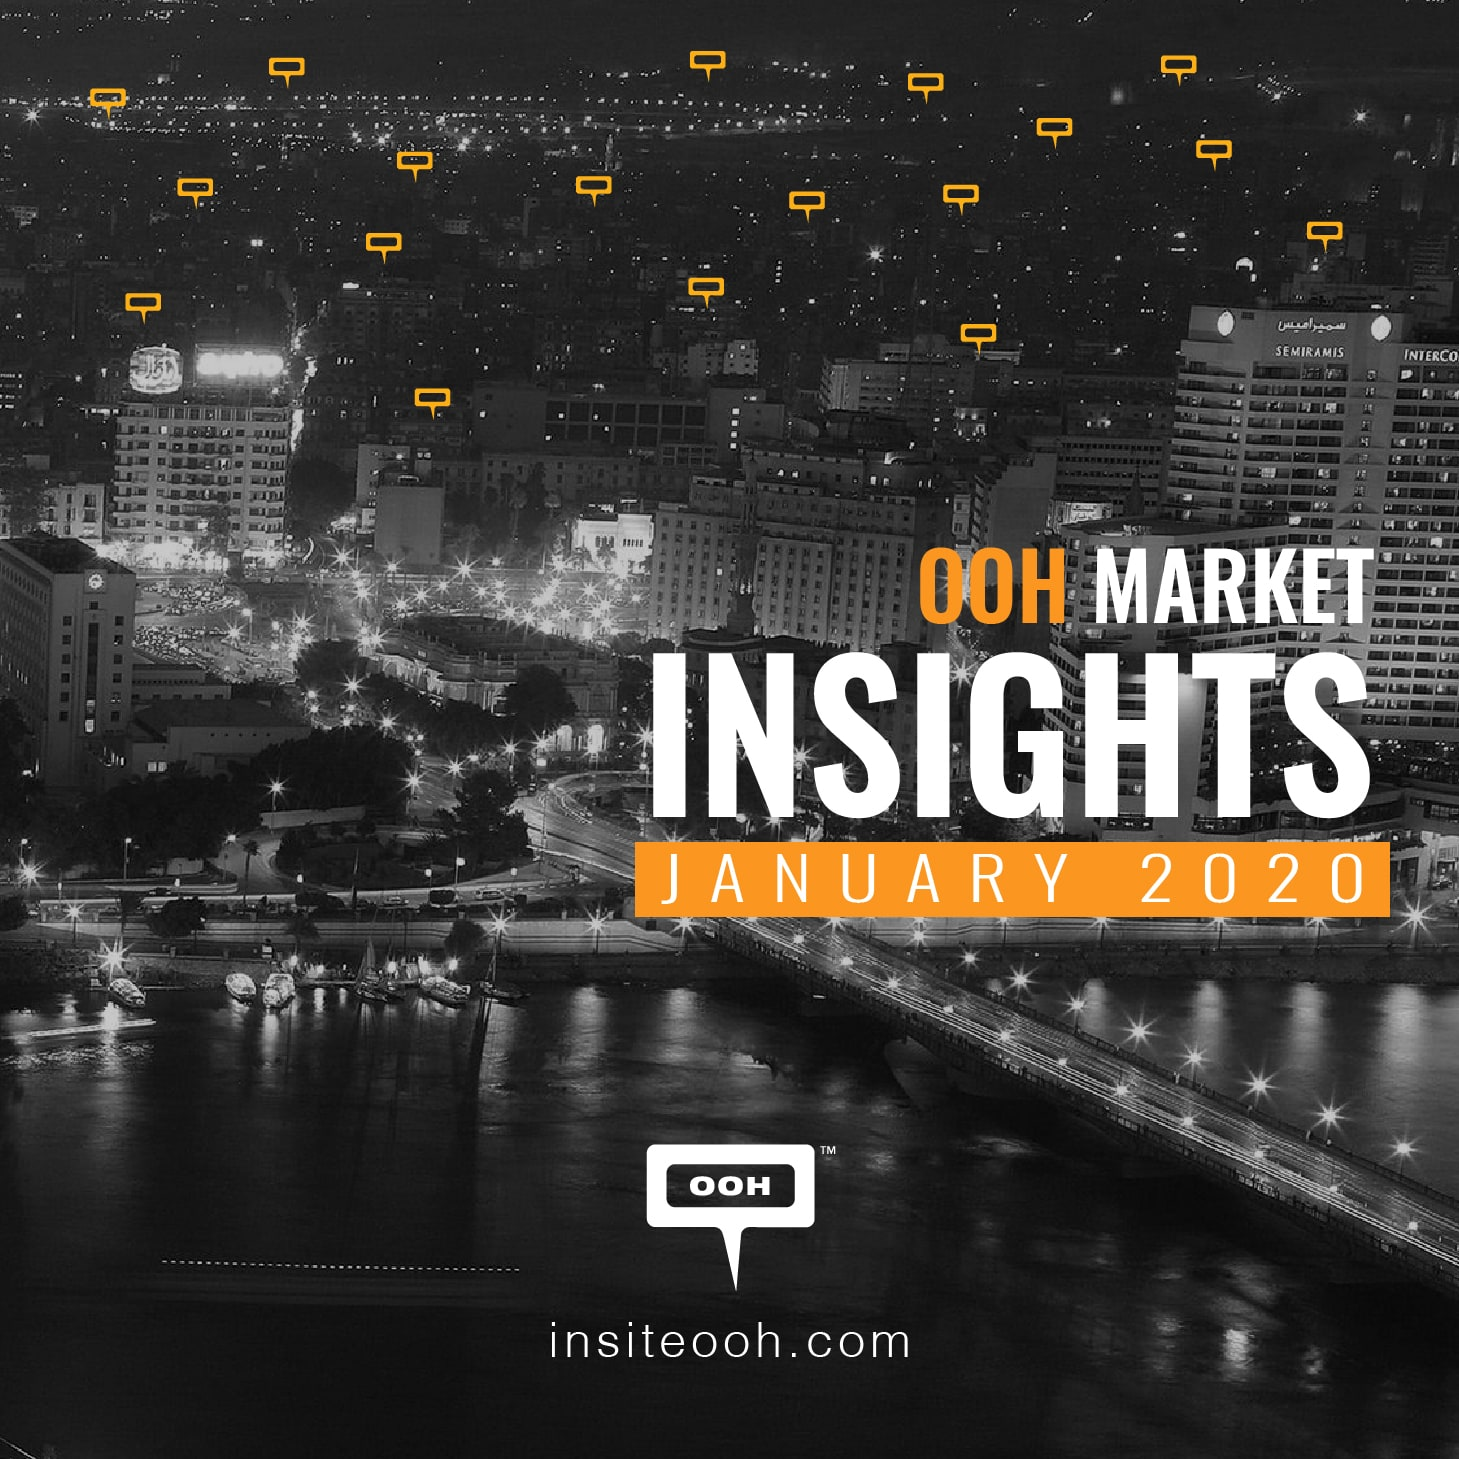 The OOH market rides the roller coaster with  4% market occupancy decrease in January